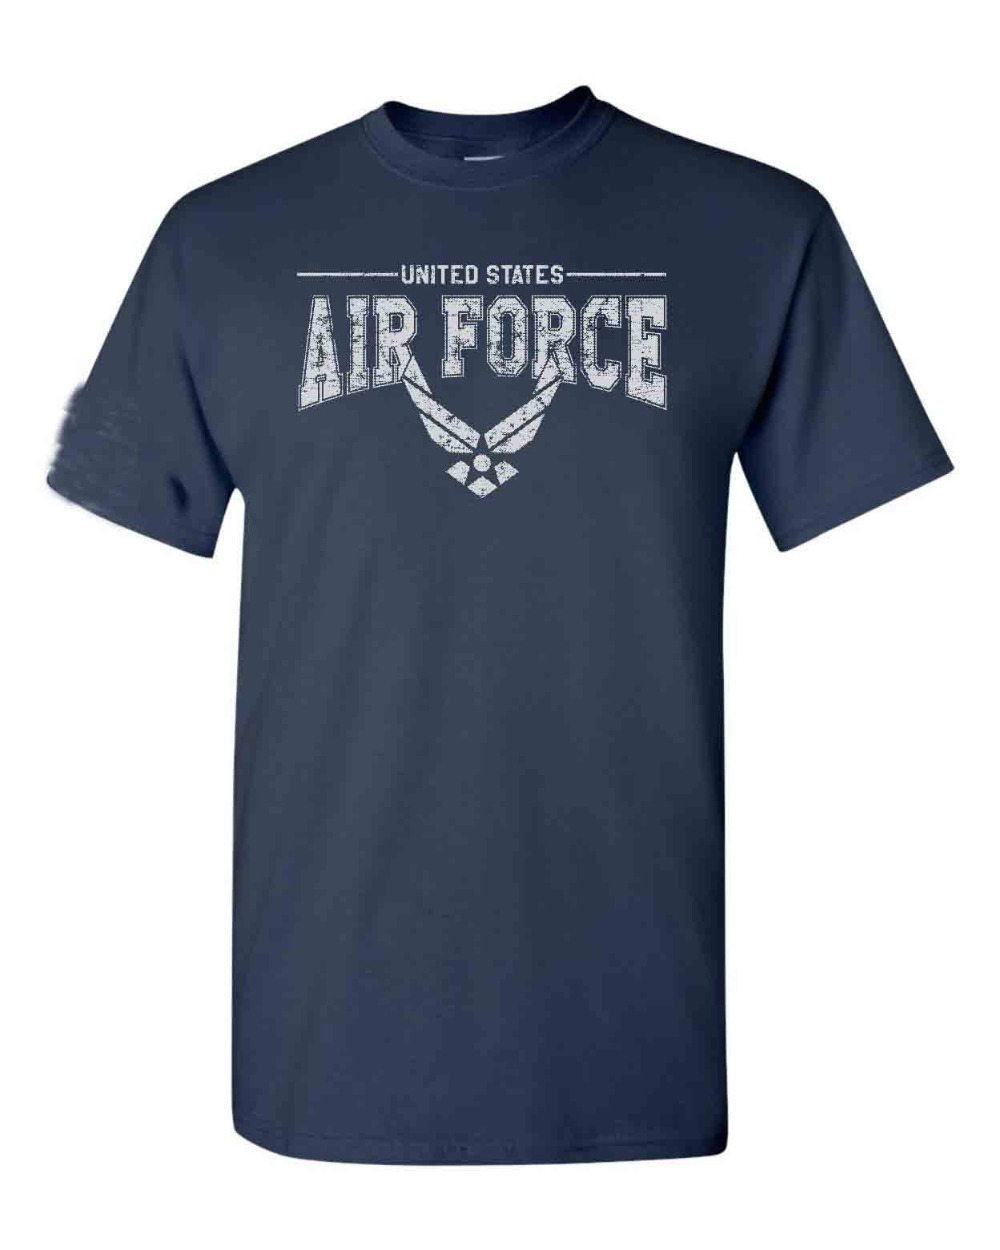 2019 New Summer Men Hot Sale Fashion US Air Force Logo W/US Flag Sleeve American Military <font><b>USAF</b></font> Men's O-Neck Tops Tee <font><b>Shirts</b></font> image